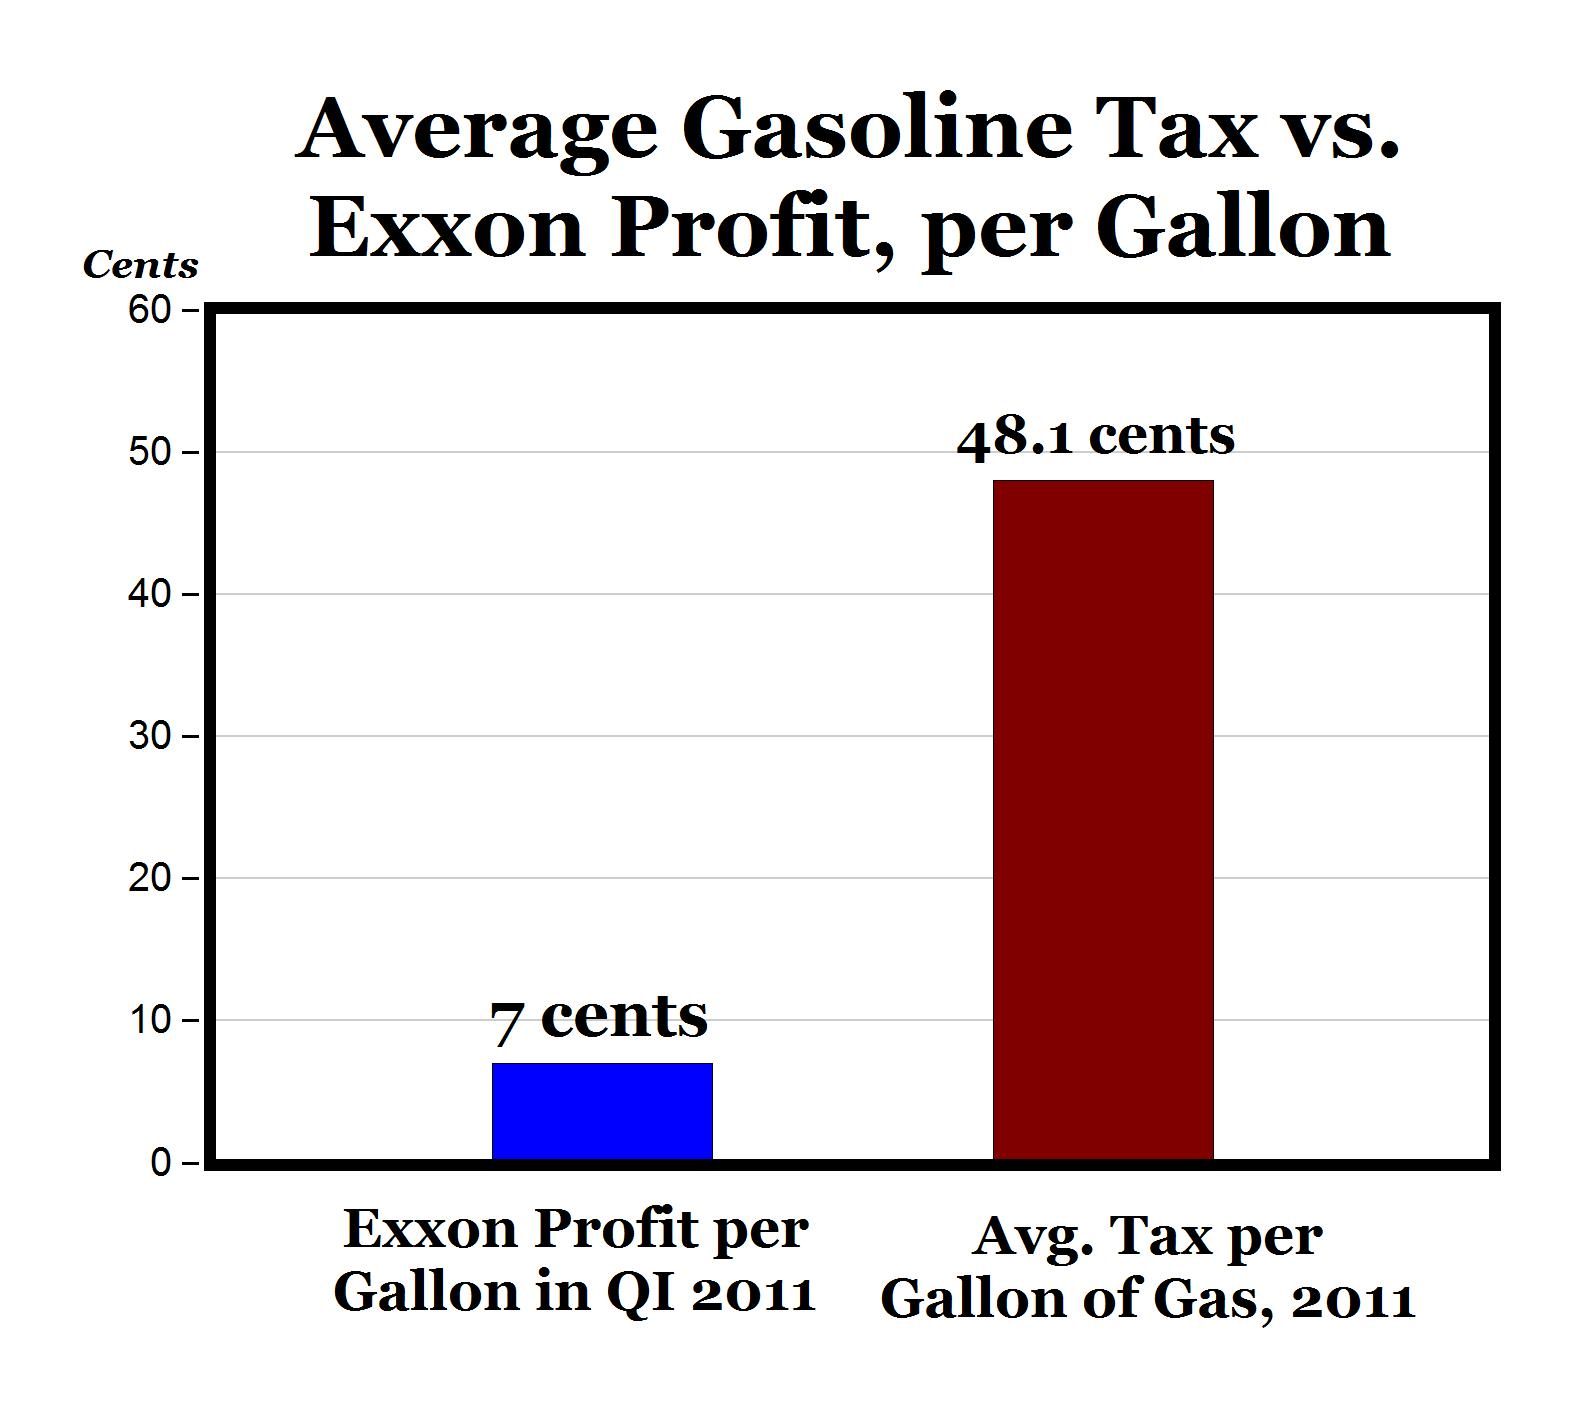 Gasoline Taxes Per Gallon Are Almost 7 Times Exxonmobil's Profit: 48 Cents  Vs. 7 Cents For Qi